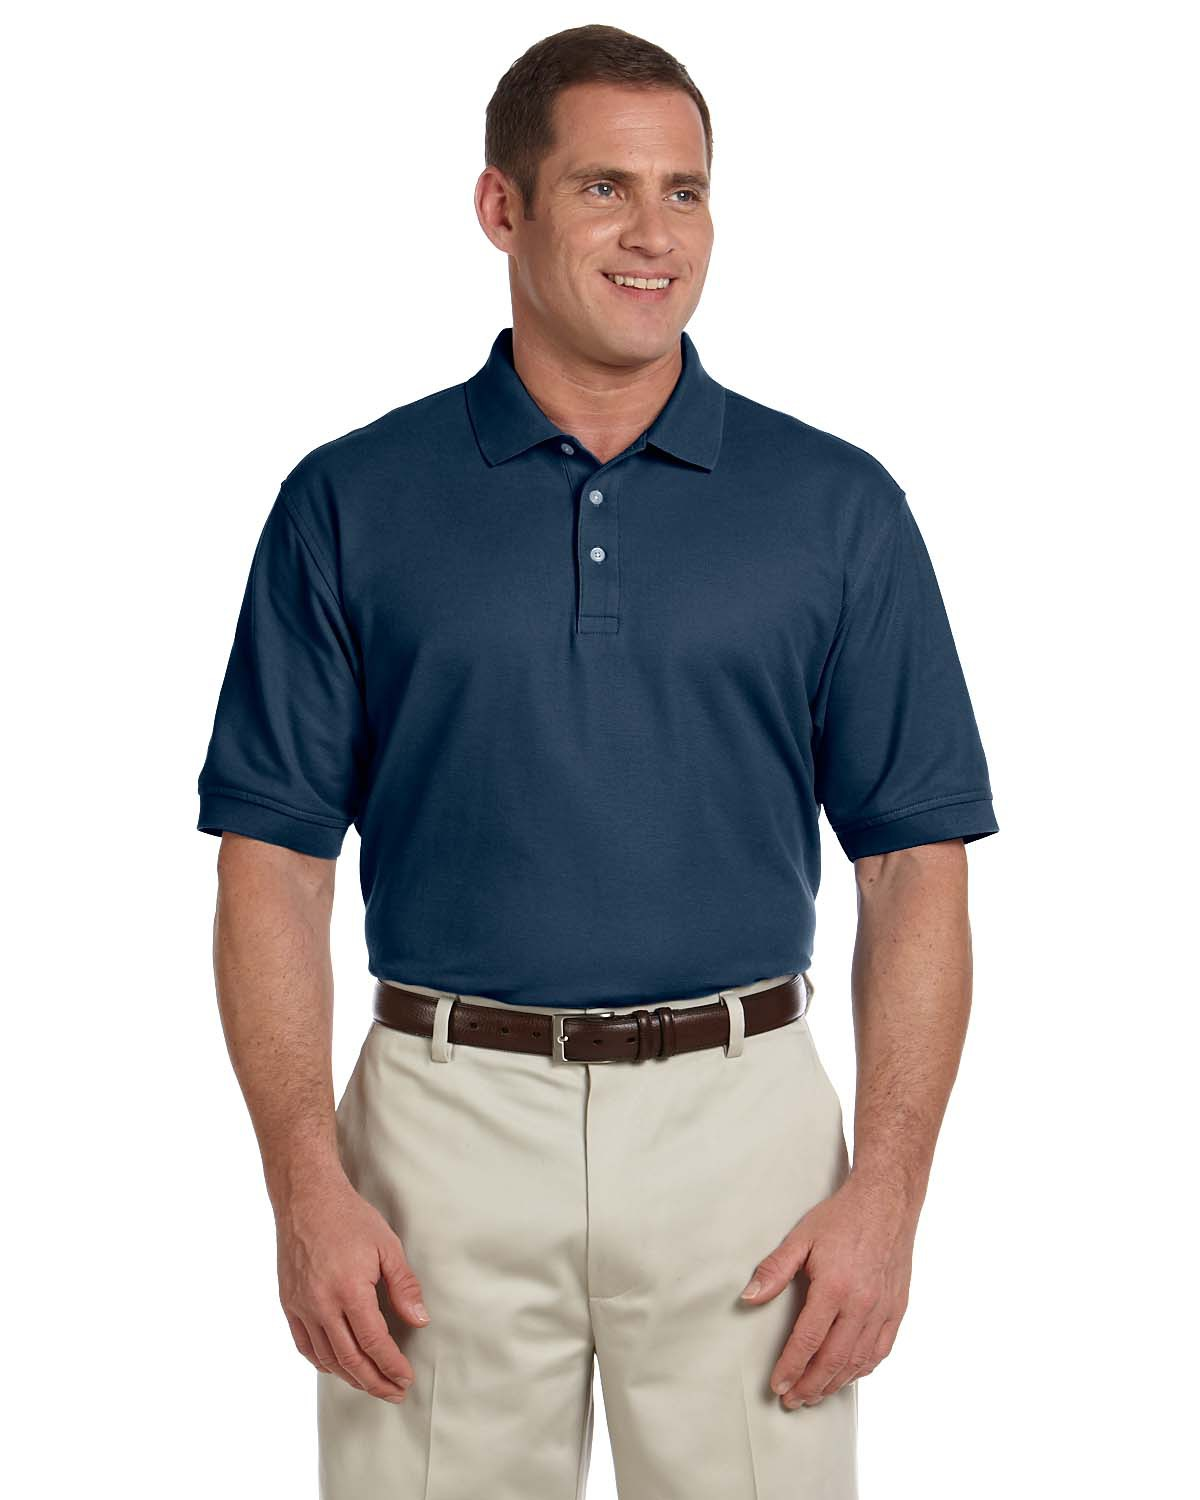 Devon & Jones D100T - Tall Pima Pique Short-Sleeve Polo